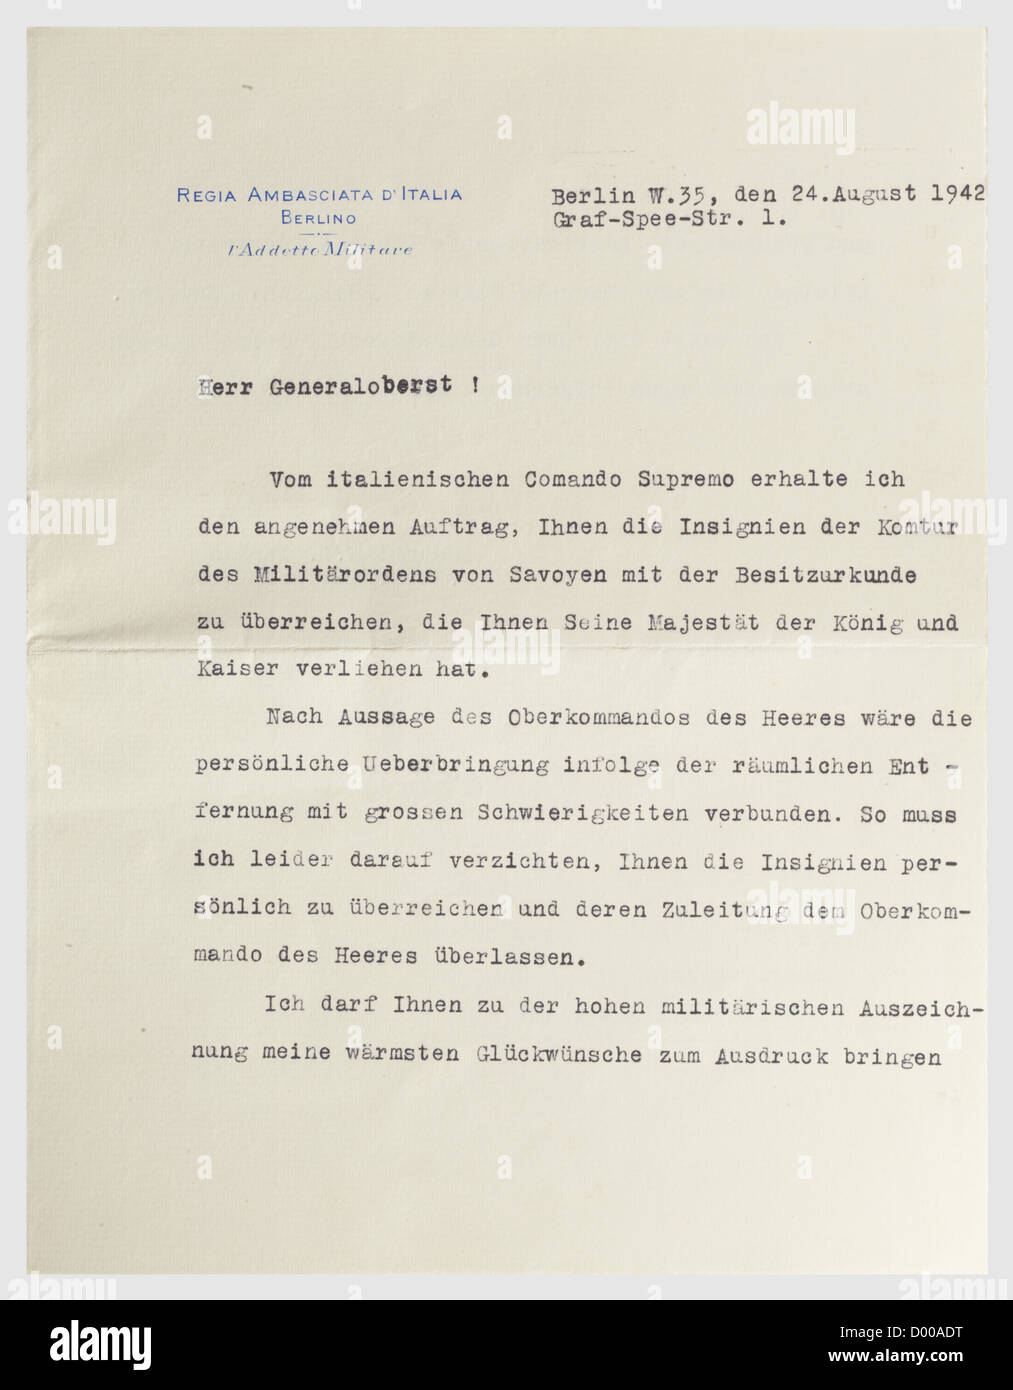 Generalfeldmarschall Ewald von Kleist - Appointment to Generaloberst, Document with folder dated 19 July 1940. Double - Stock Image